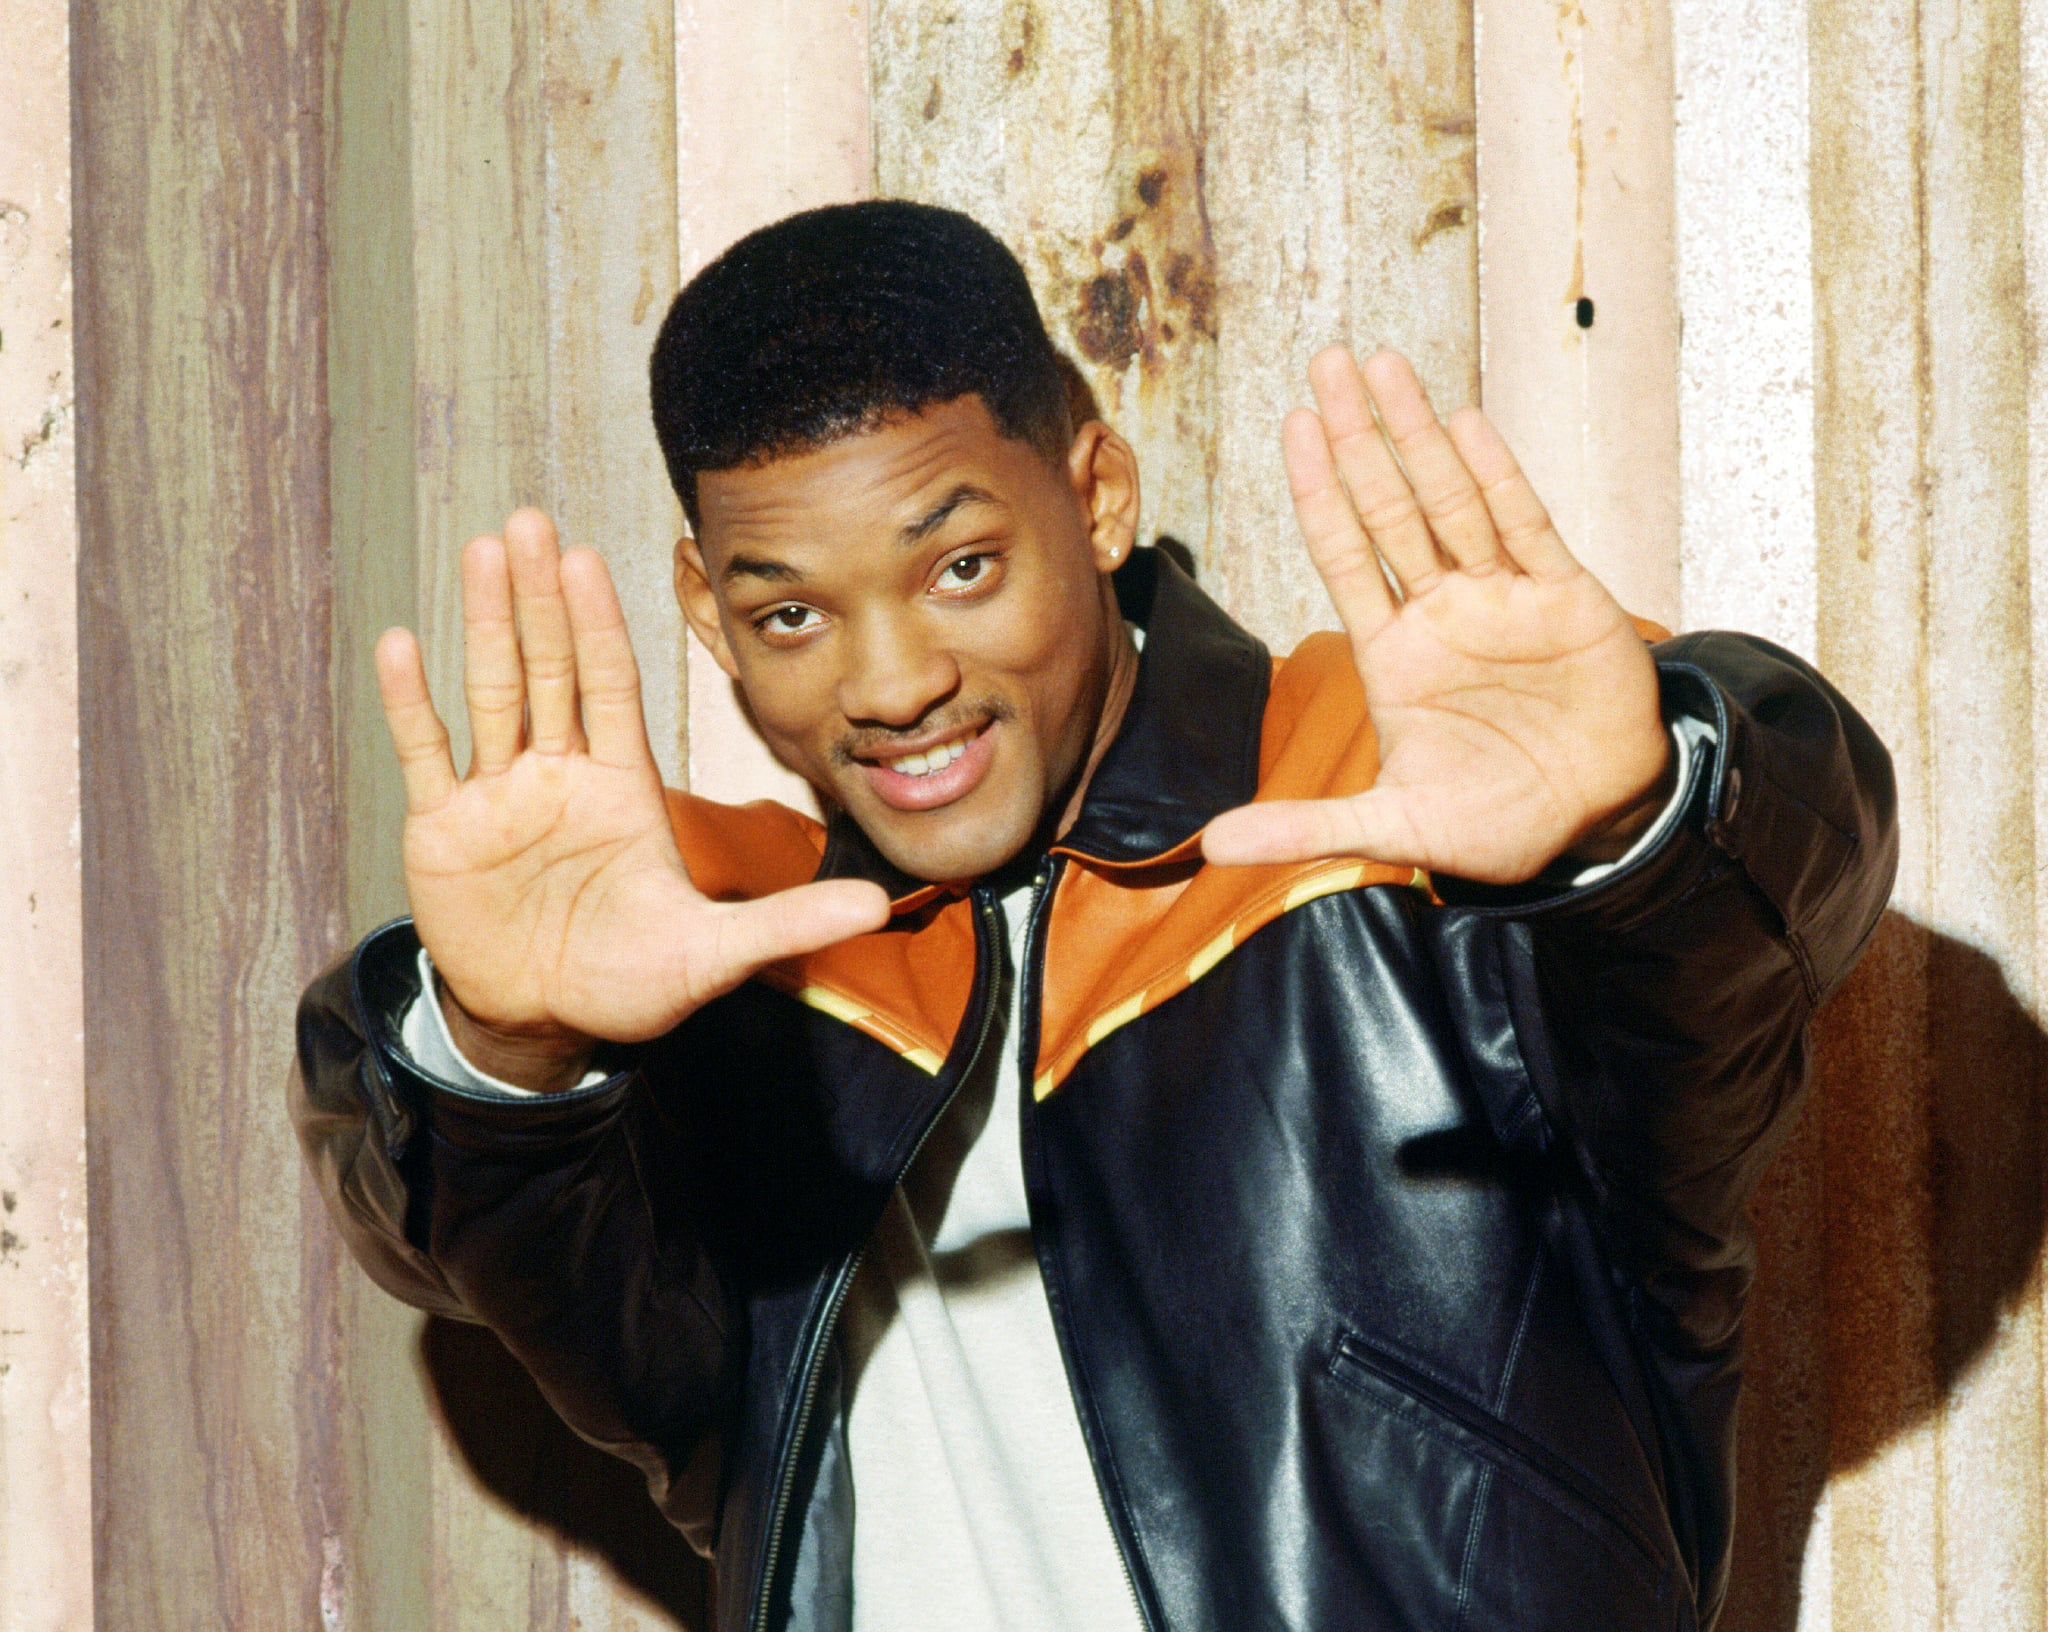 THE FRESH PRINCE OF BEL-AIR, Will Smith, ca. 1994, Season 4, 1990-96, (c)NBC/courtesy Everett Collection